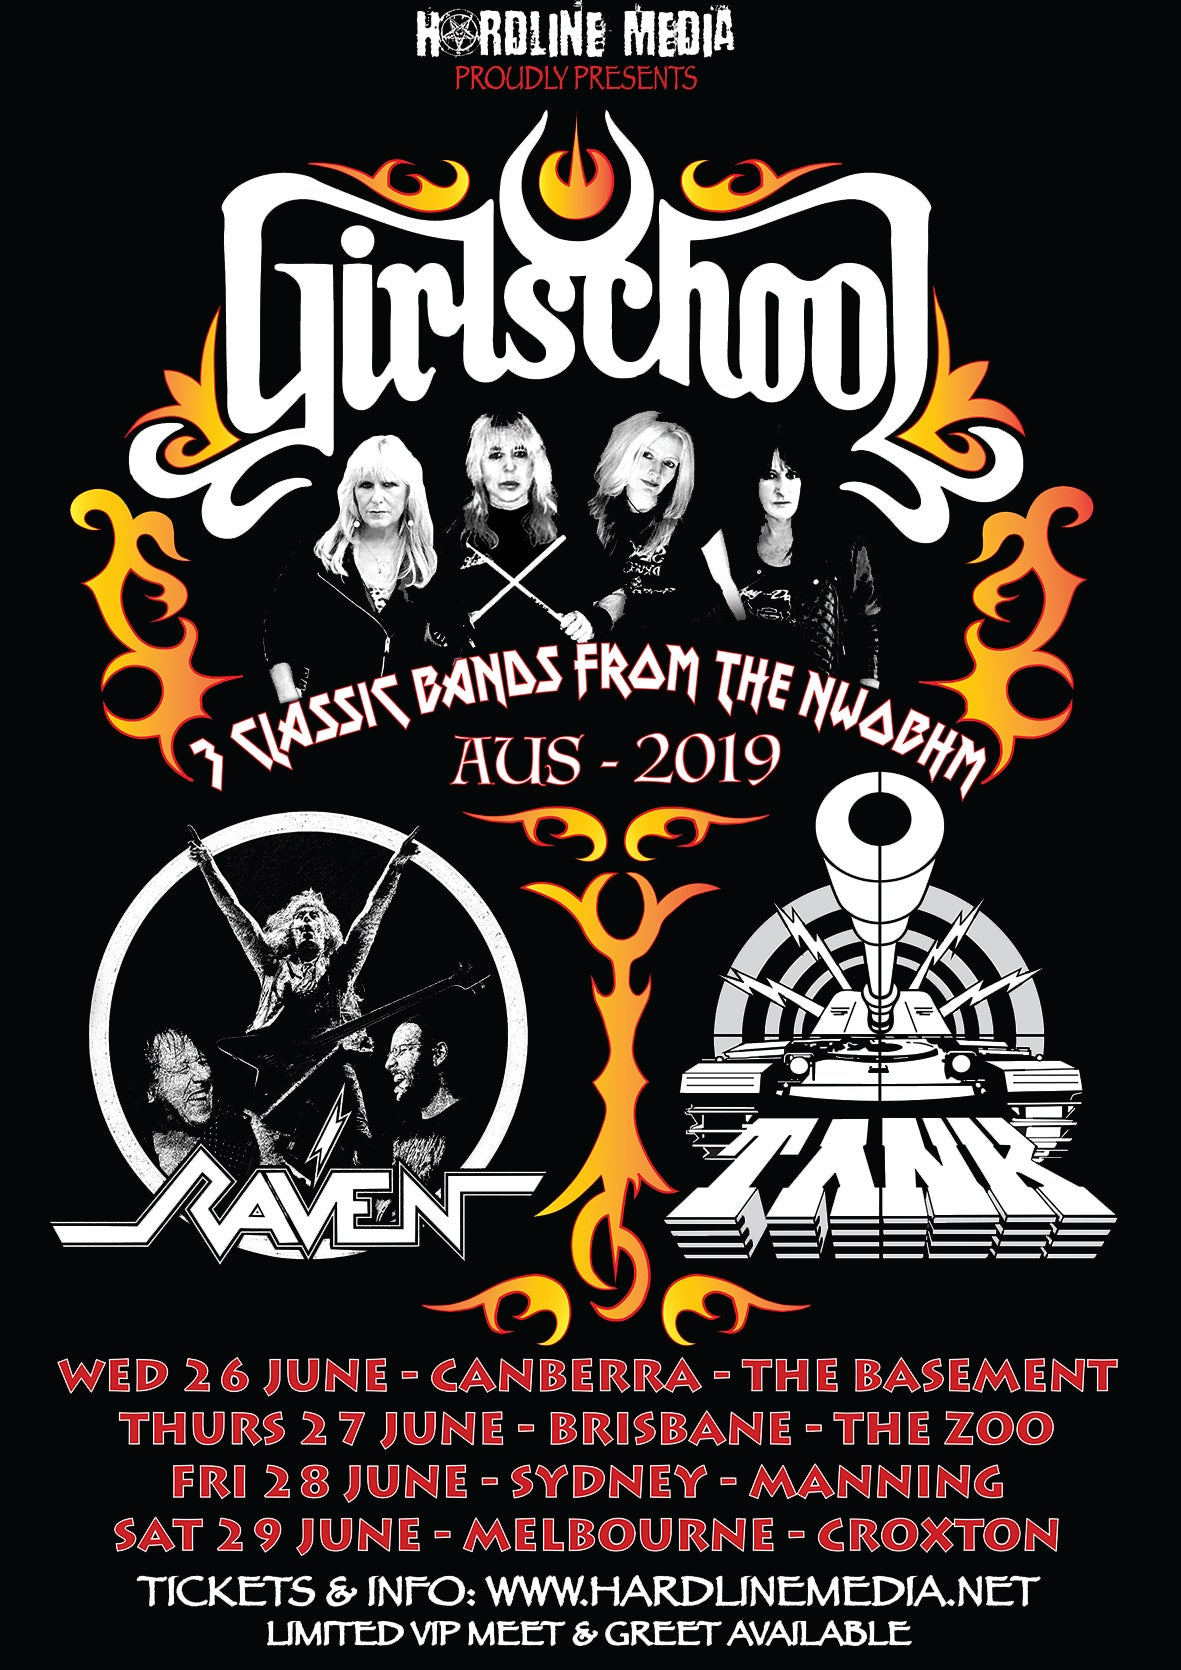 Image of GA TICKET - GIRLSCHOOL + RAVEN + TANK - SYDNEY, MANNING - FRI 28 JUNE